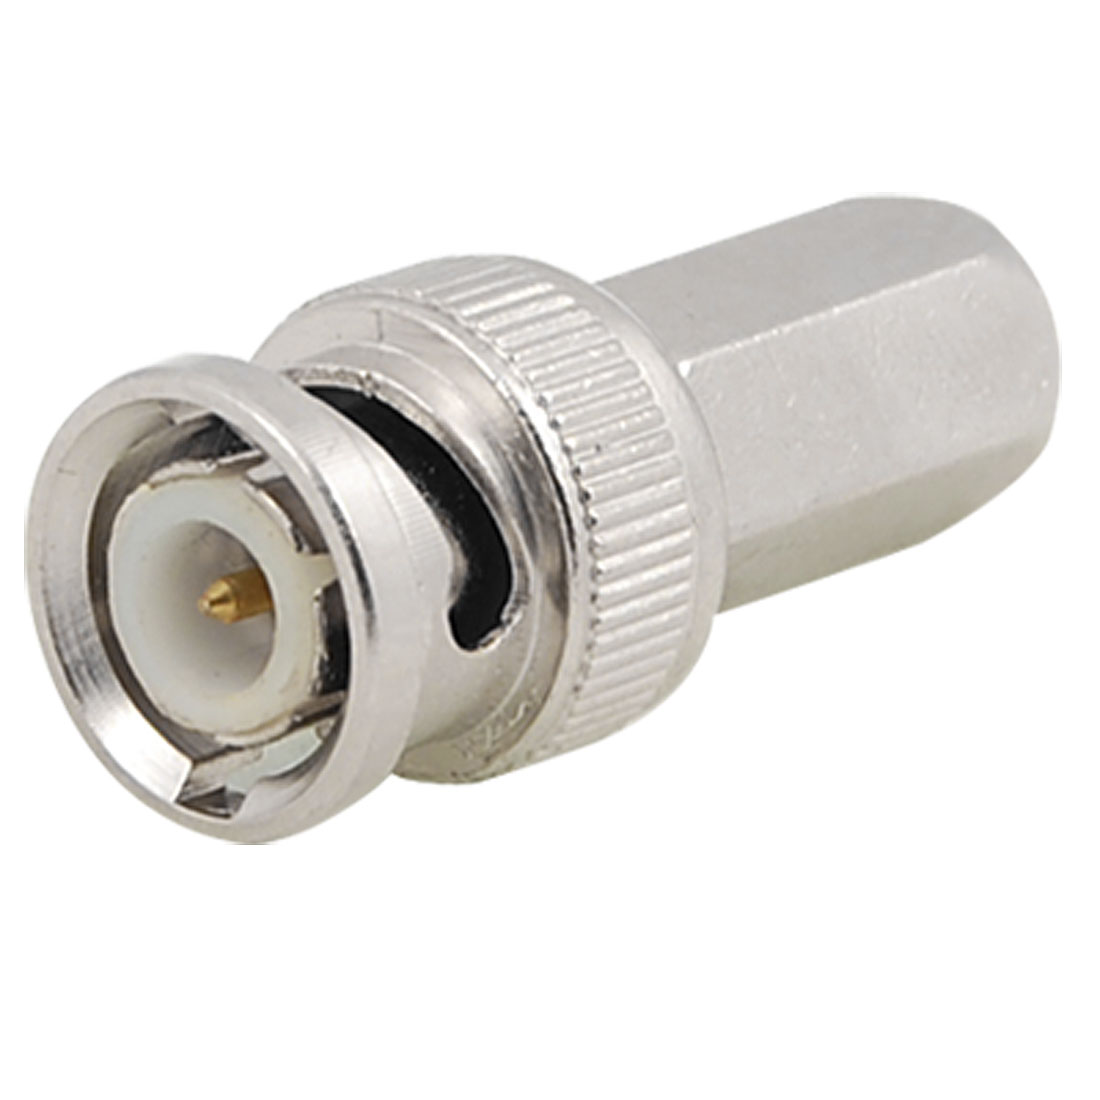 CCTV BNC Twist On RG59 Coax Cable Adapter Connector for Security Camera